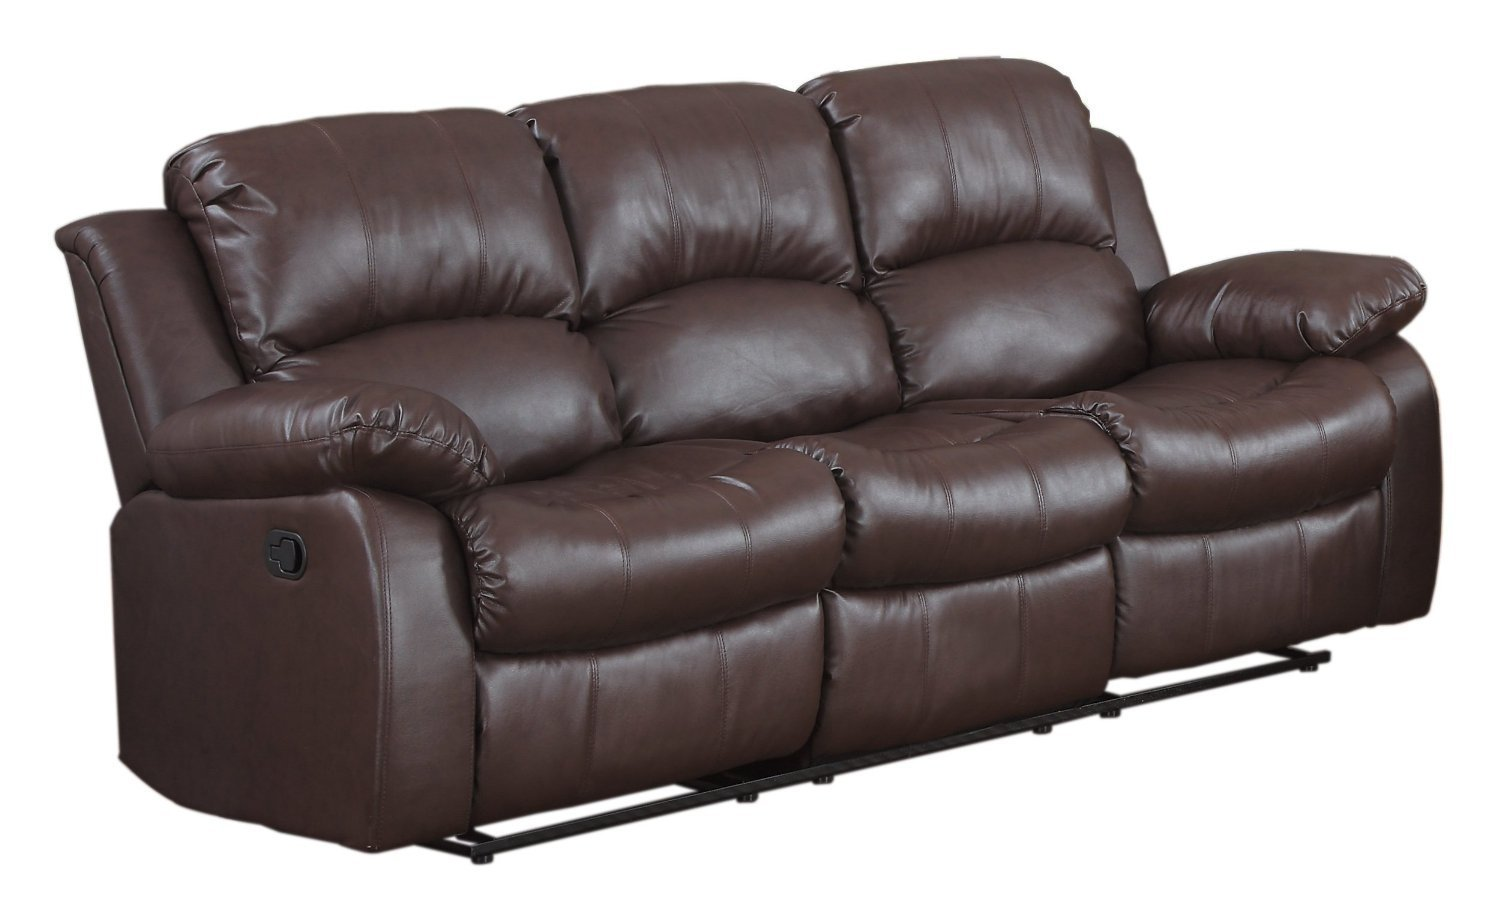 Brown Leather Couch Home Furniture Design